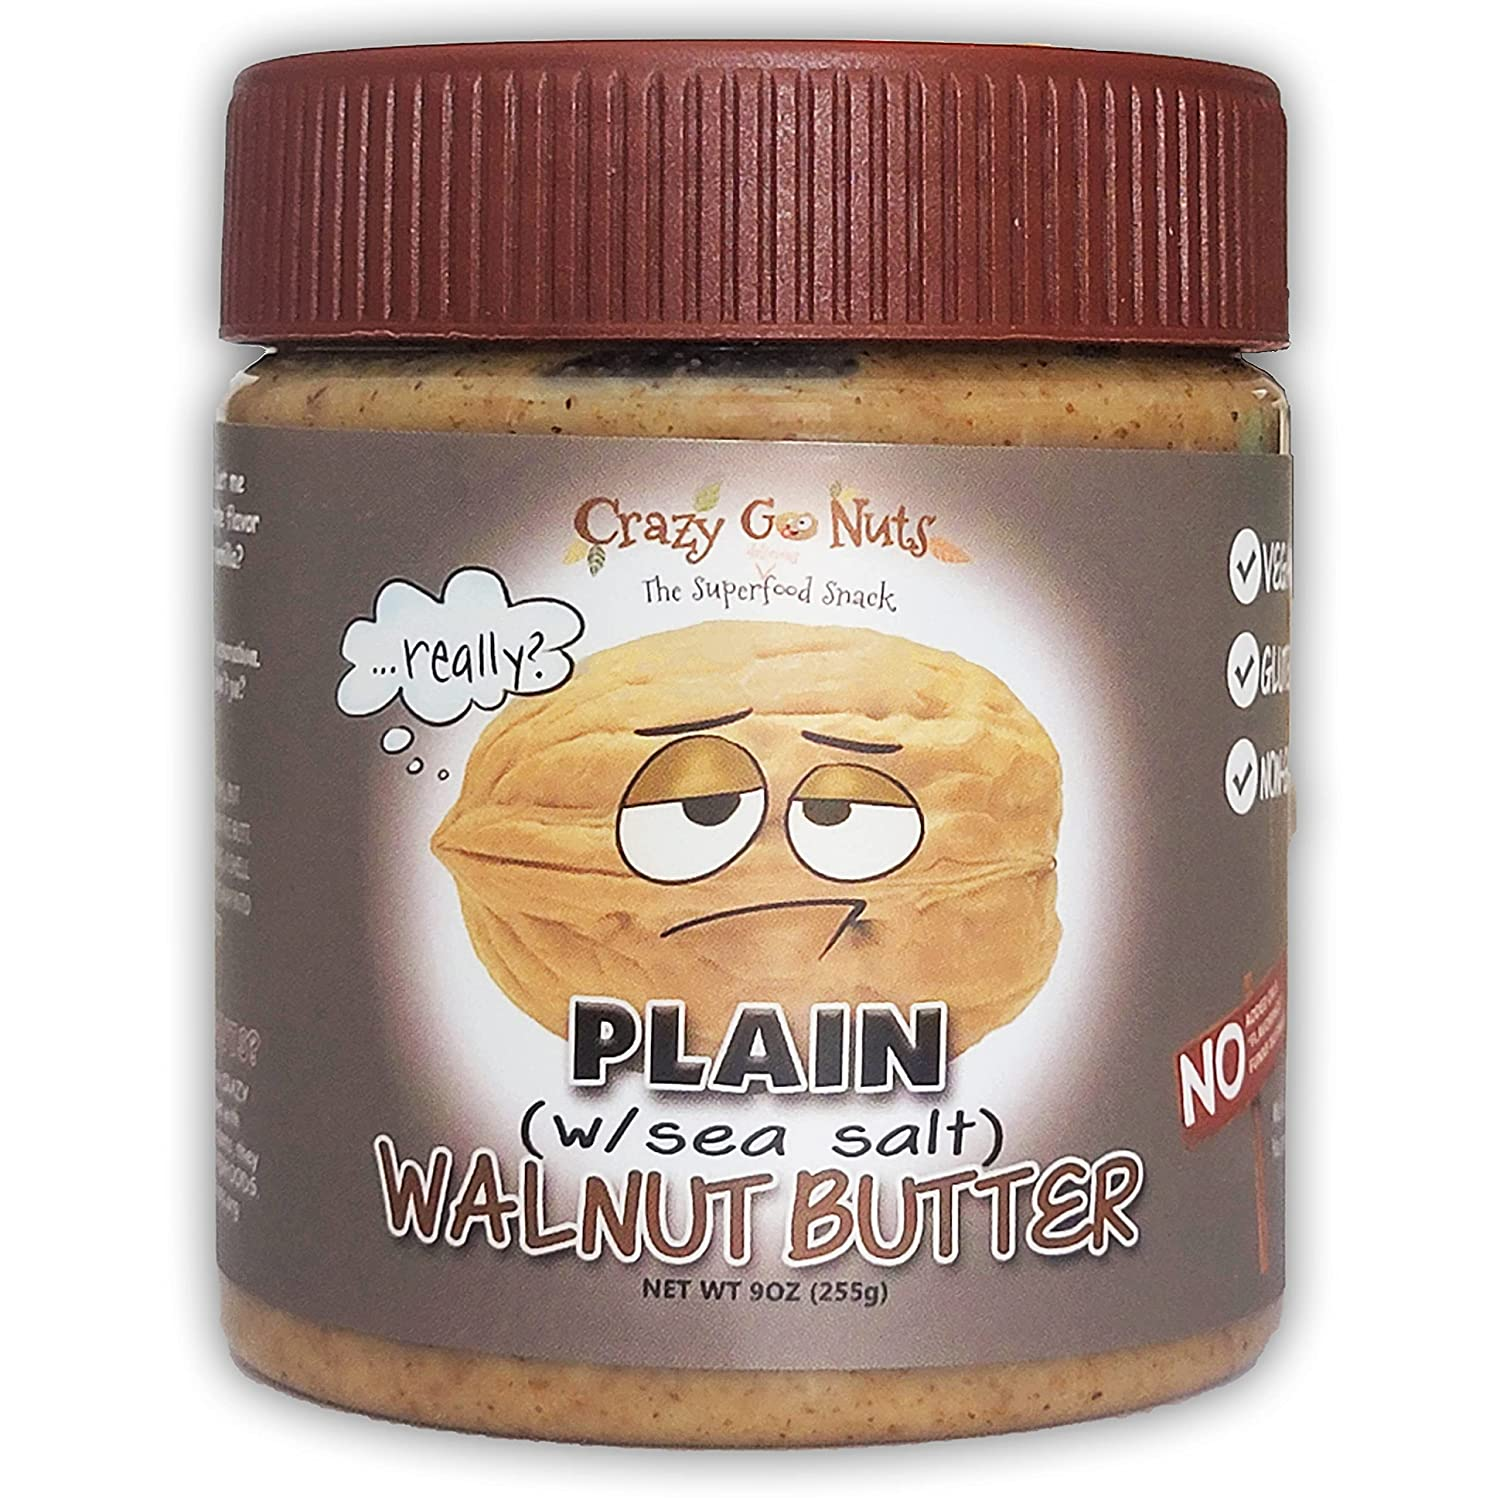 Crazy Go Nuts Walnut Butter - New Shipping Free Plain 9 oz w 1-Pack Salt Sea Bombing free shipping